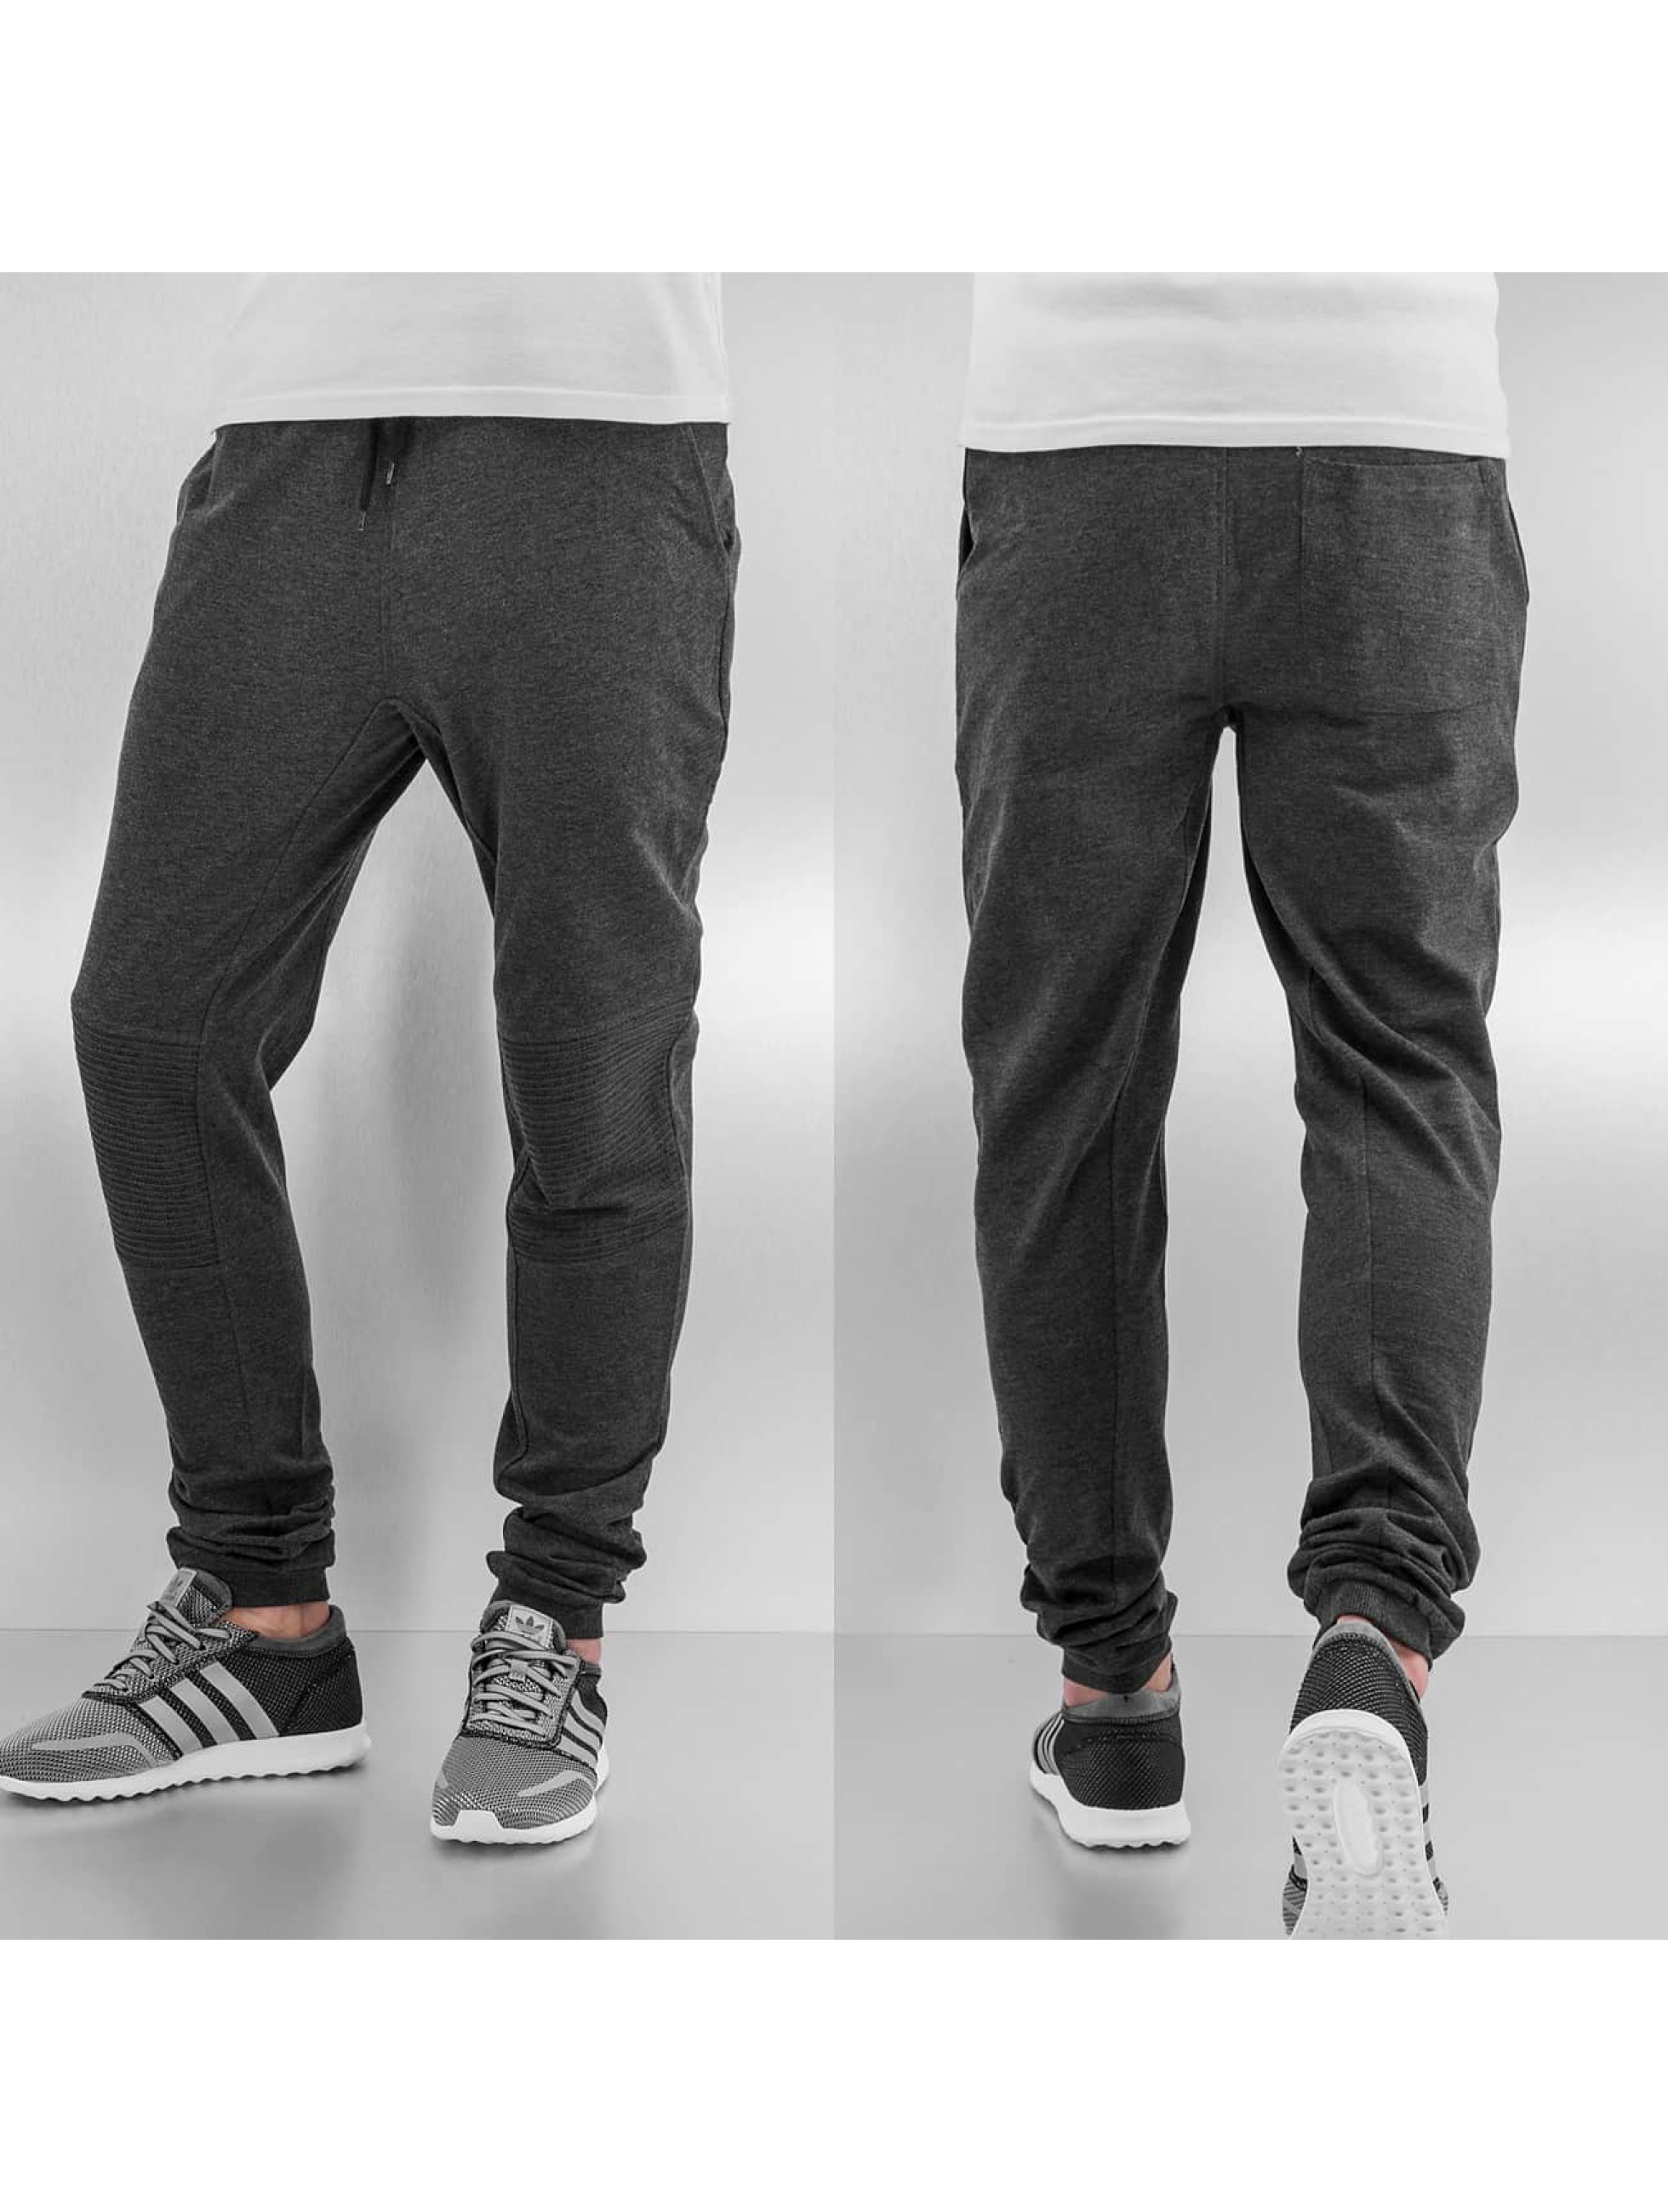 Urban Classics Deep Crotch Terry Biker Sweatpants Charcoal